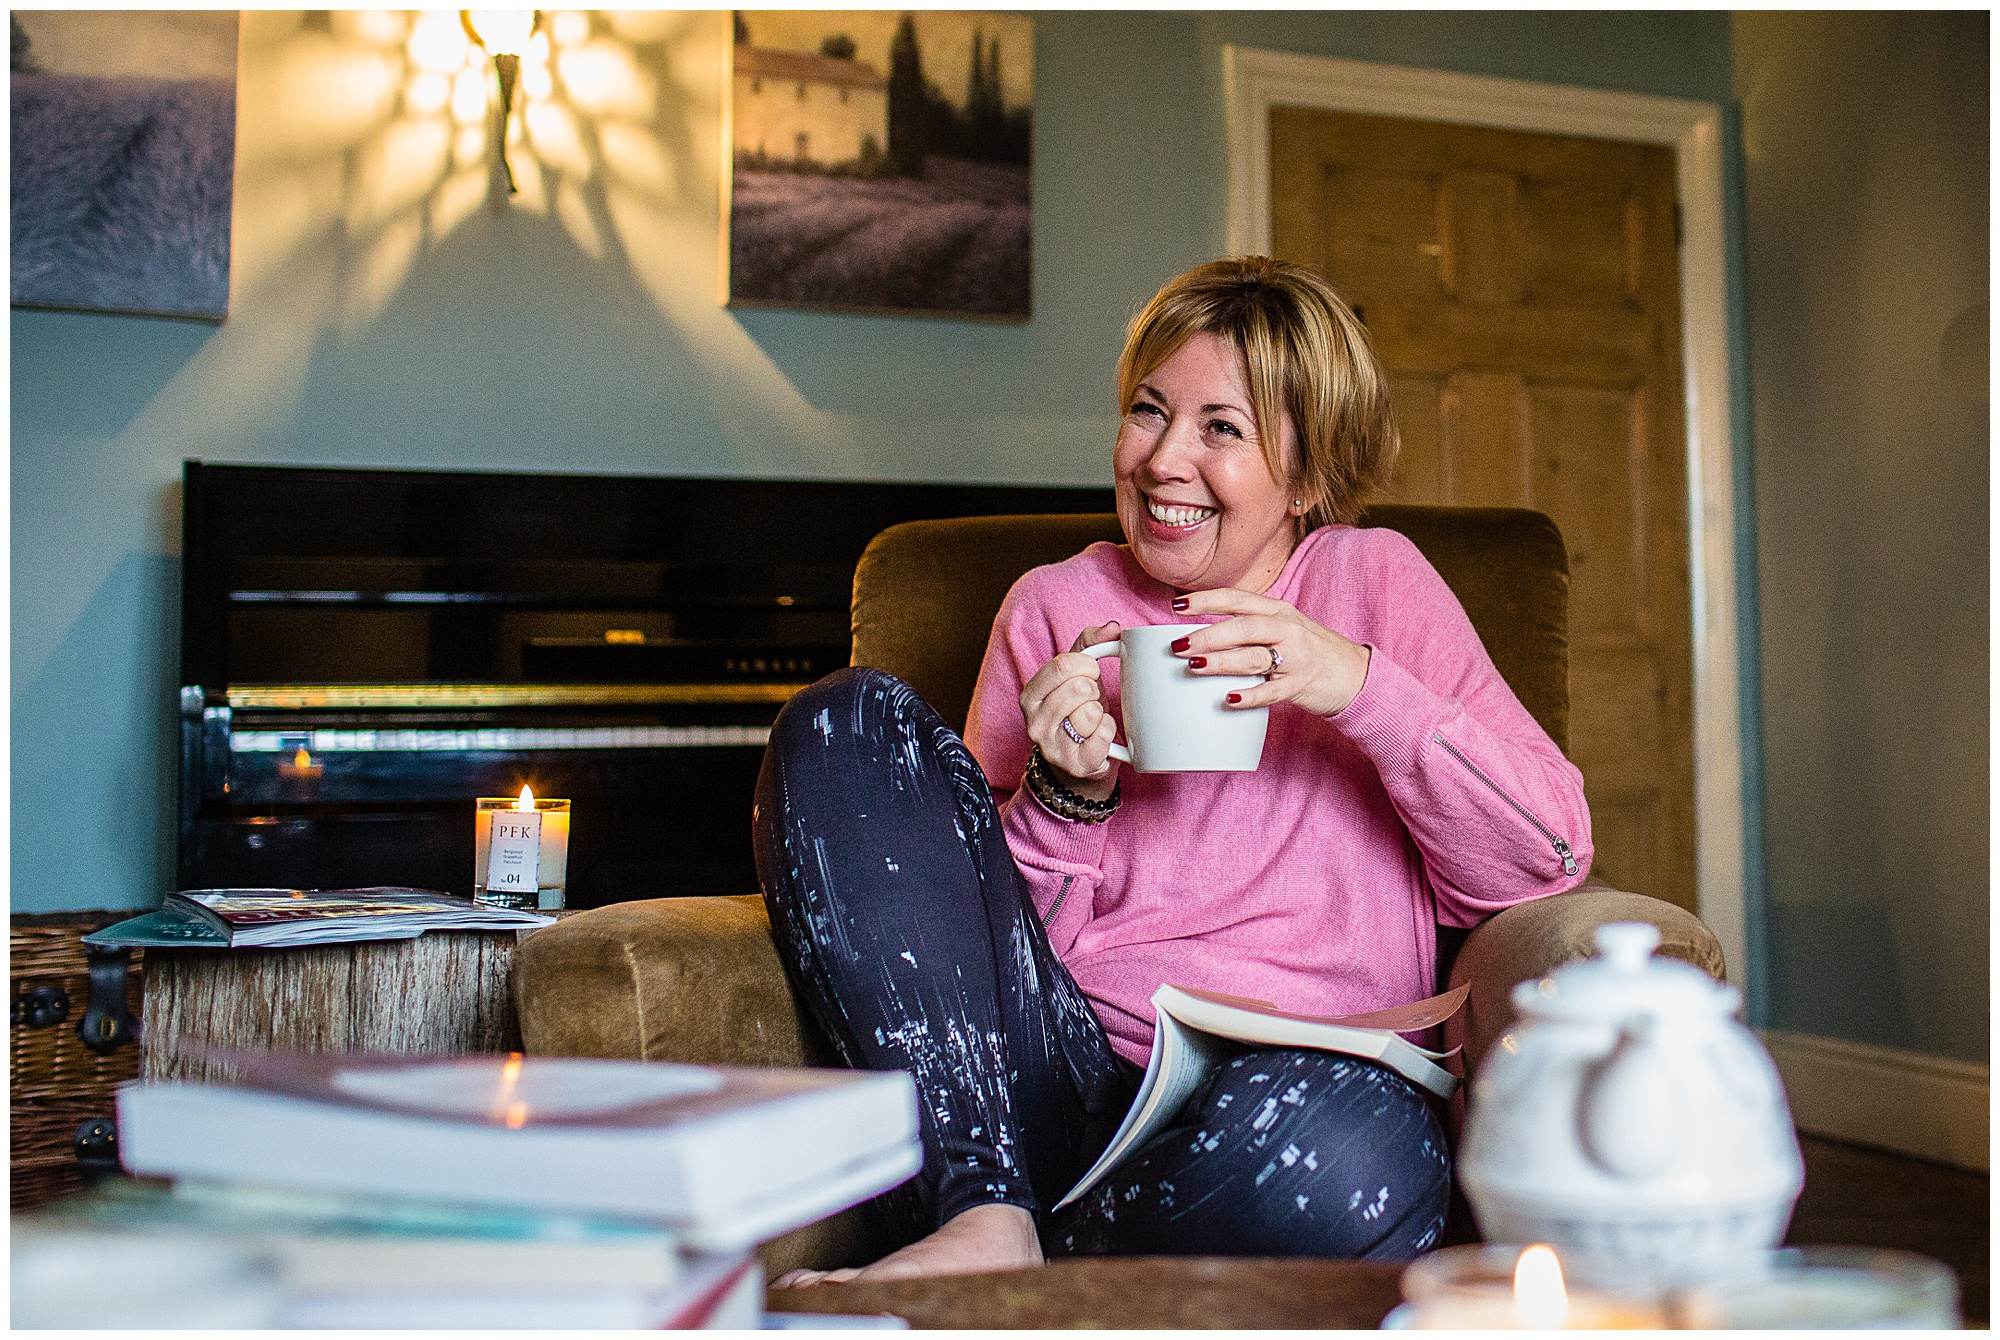 Paula Fox Kirkham candle maker, reading a book and holding a cup of tea laughing, Lifestyle Photographer Shropshire